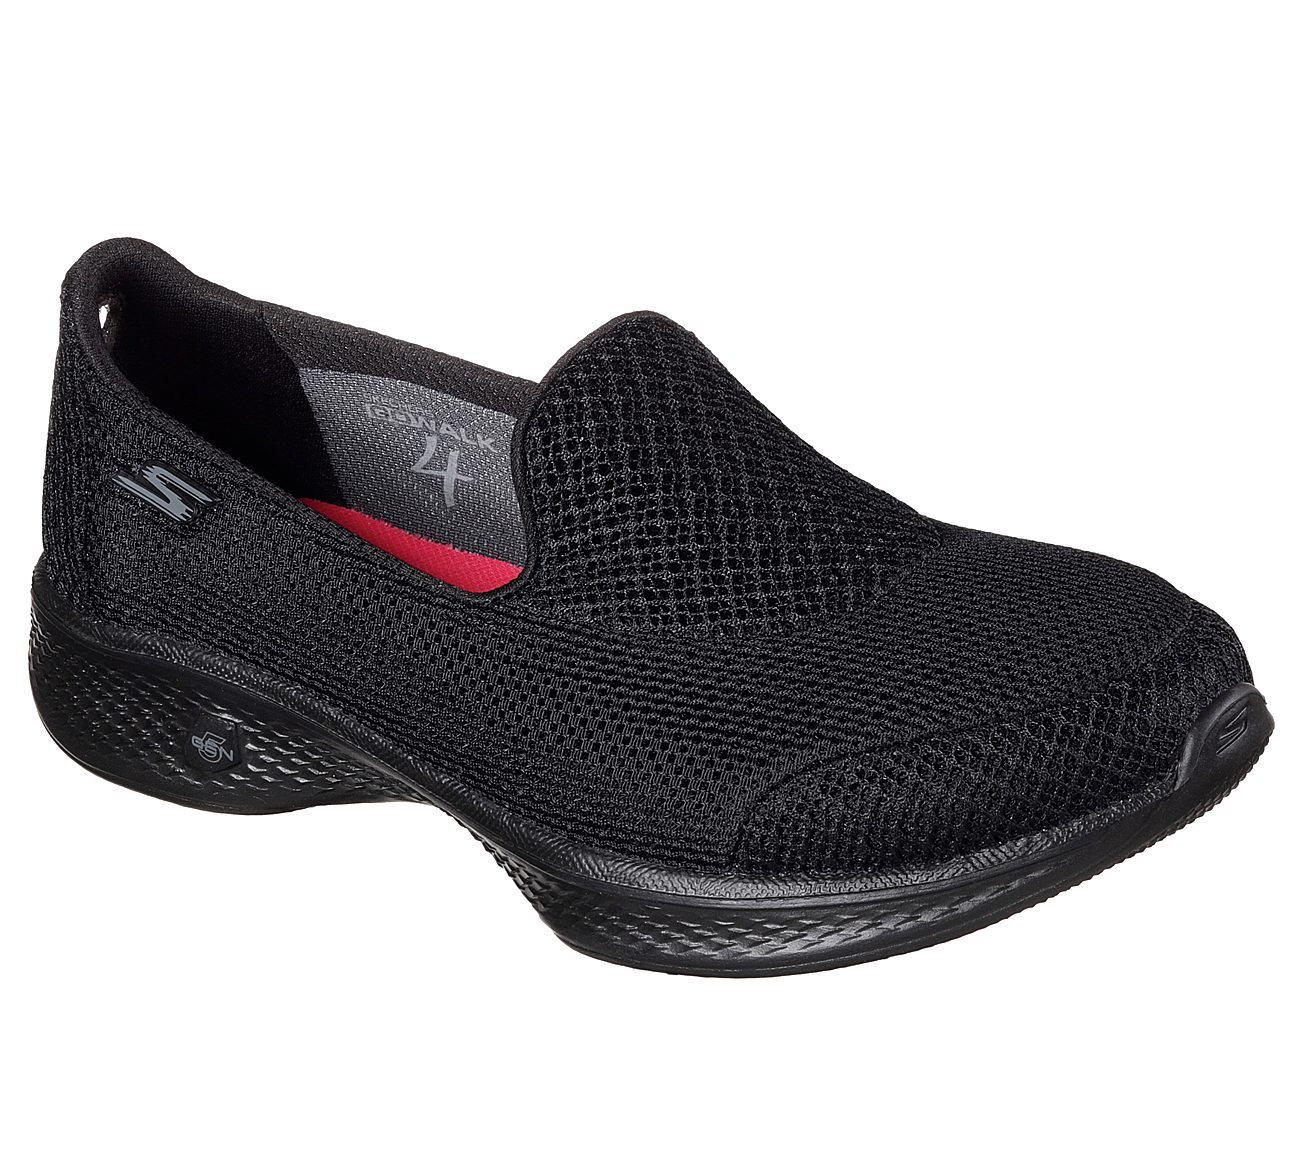 dcc46c6c35eac Buy SKECHERS Skechers GOwalk 4 - Propel Skechers Performance Shoes ...